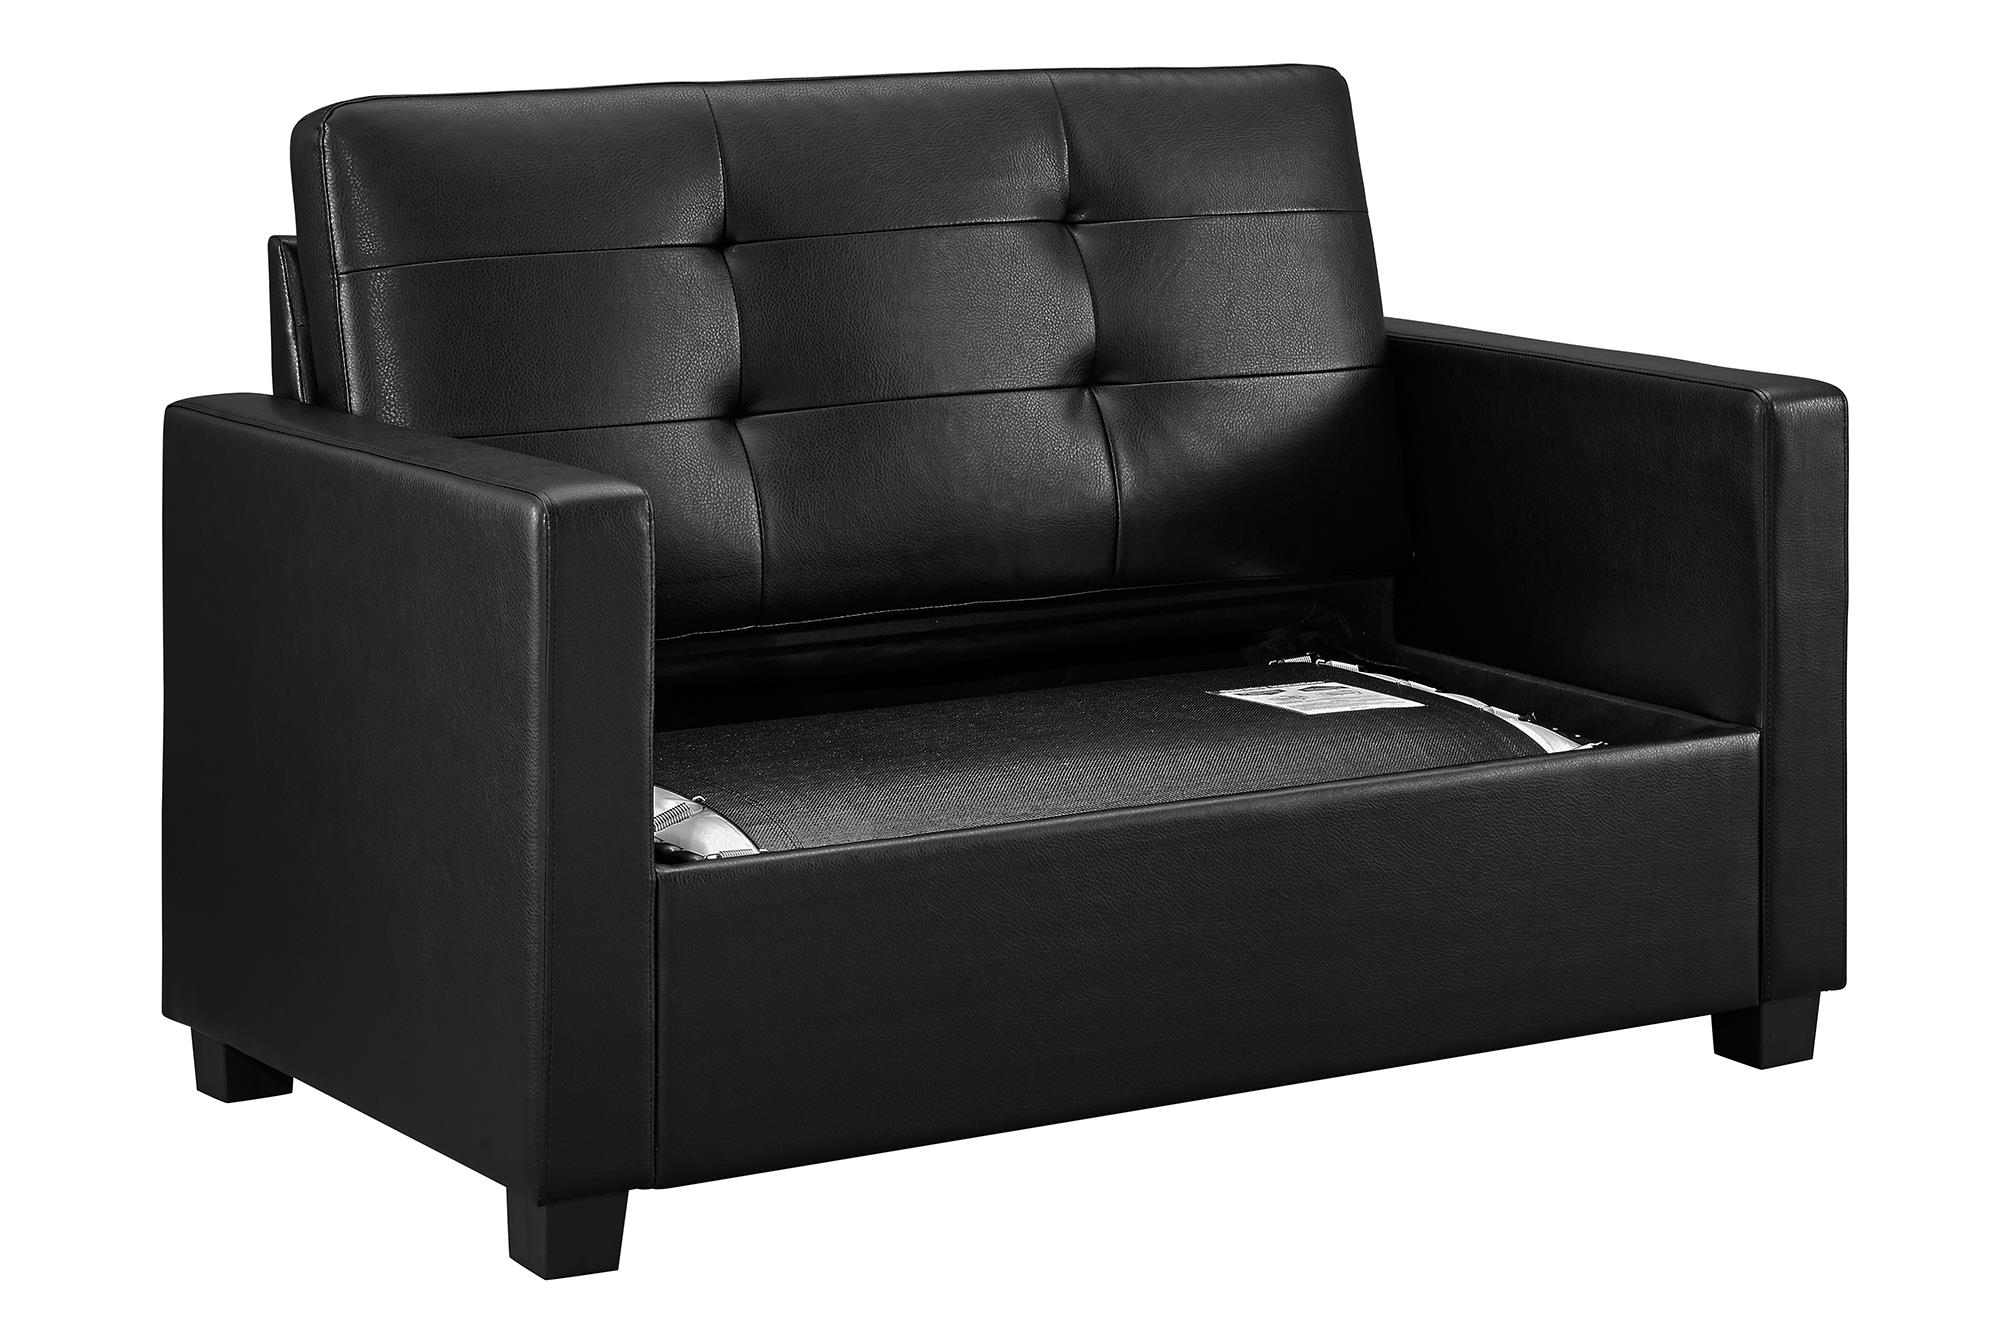 mainstays sofa sleeper with memory foam wall bed nyc loveseat mattress multiple colors walmart com